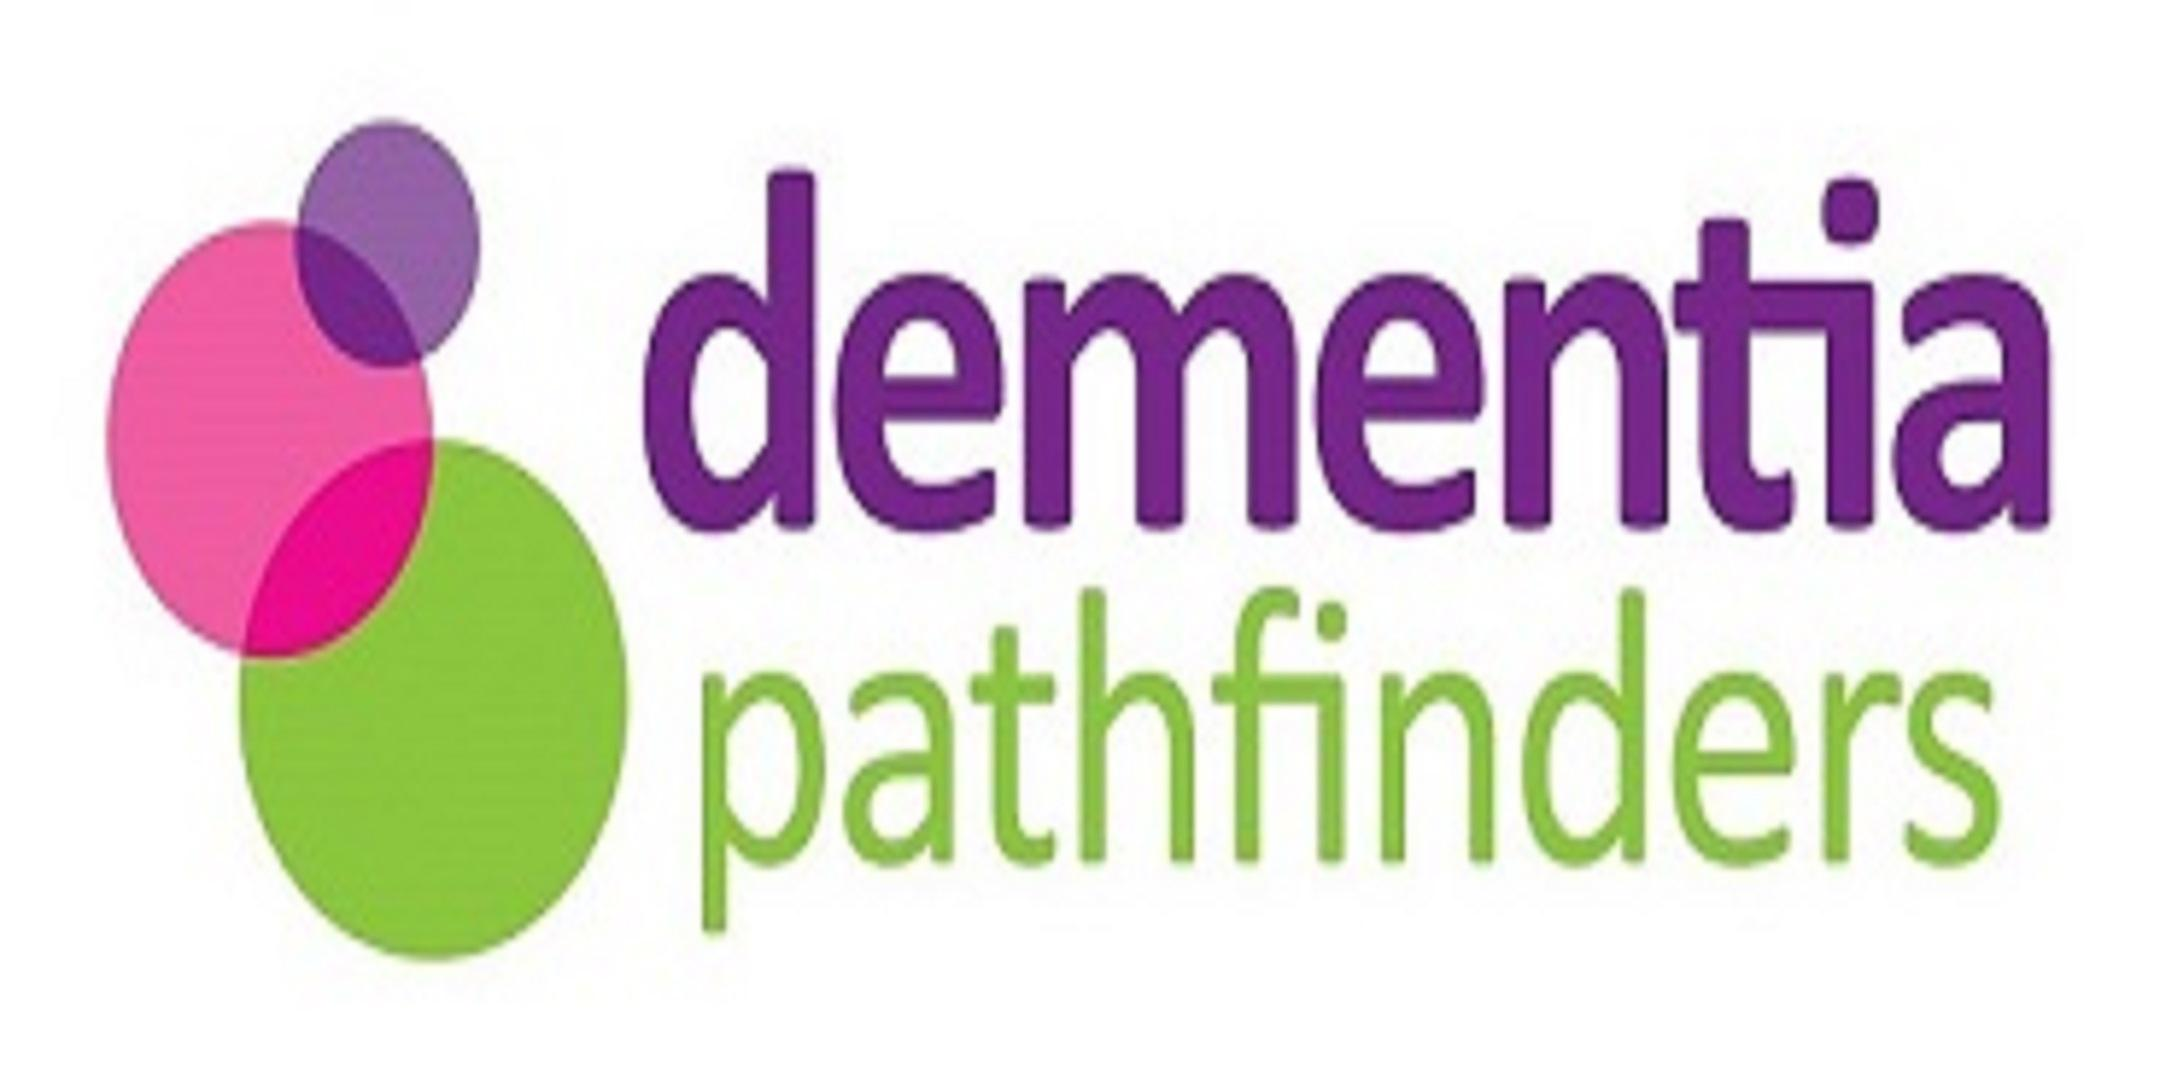 St George's Hospital Young Onset Dementia Support Group